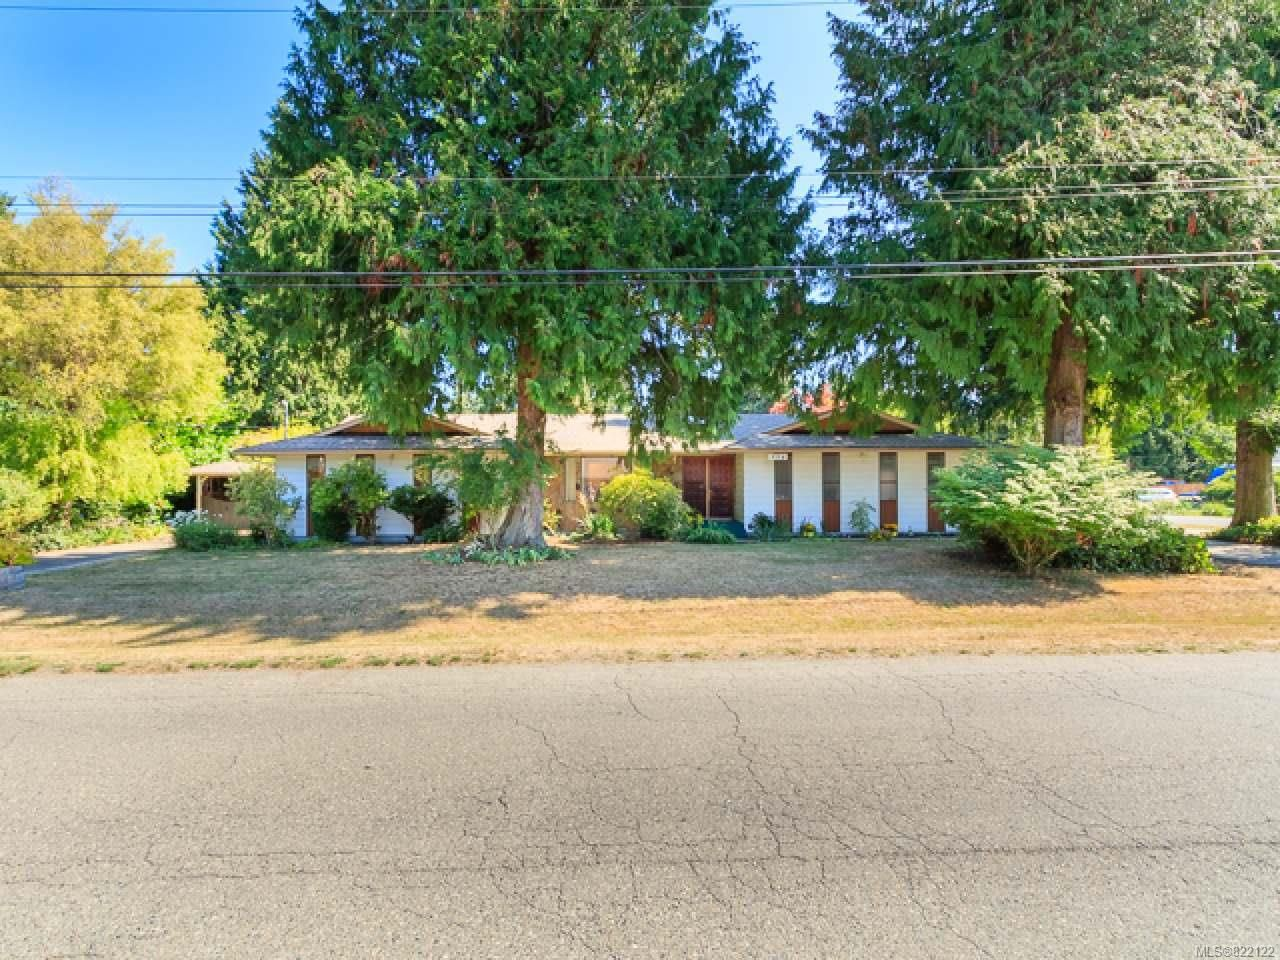 Main Photo: 994 MAPLE LANE DRIVE in PARKSVILLE: PQ Parksville House for sale (Parksville/Qualicum)  : MLS®# 822122